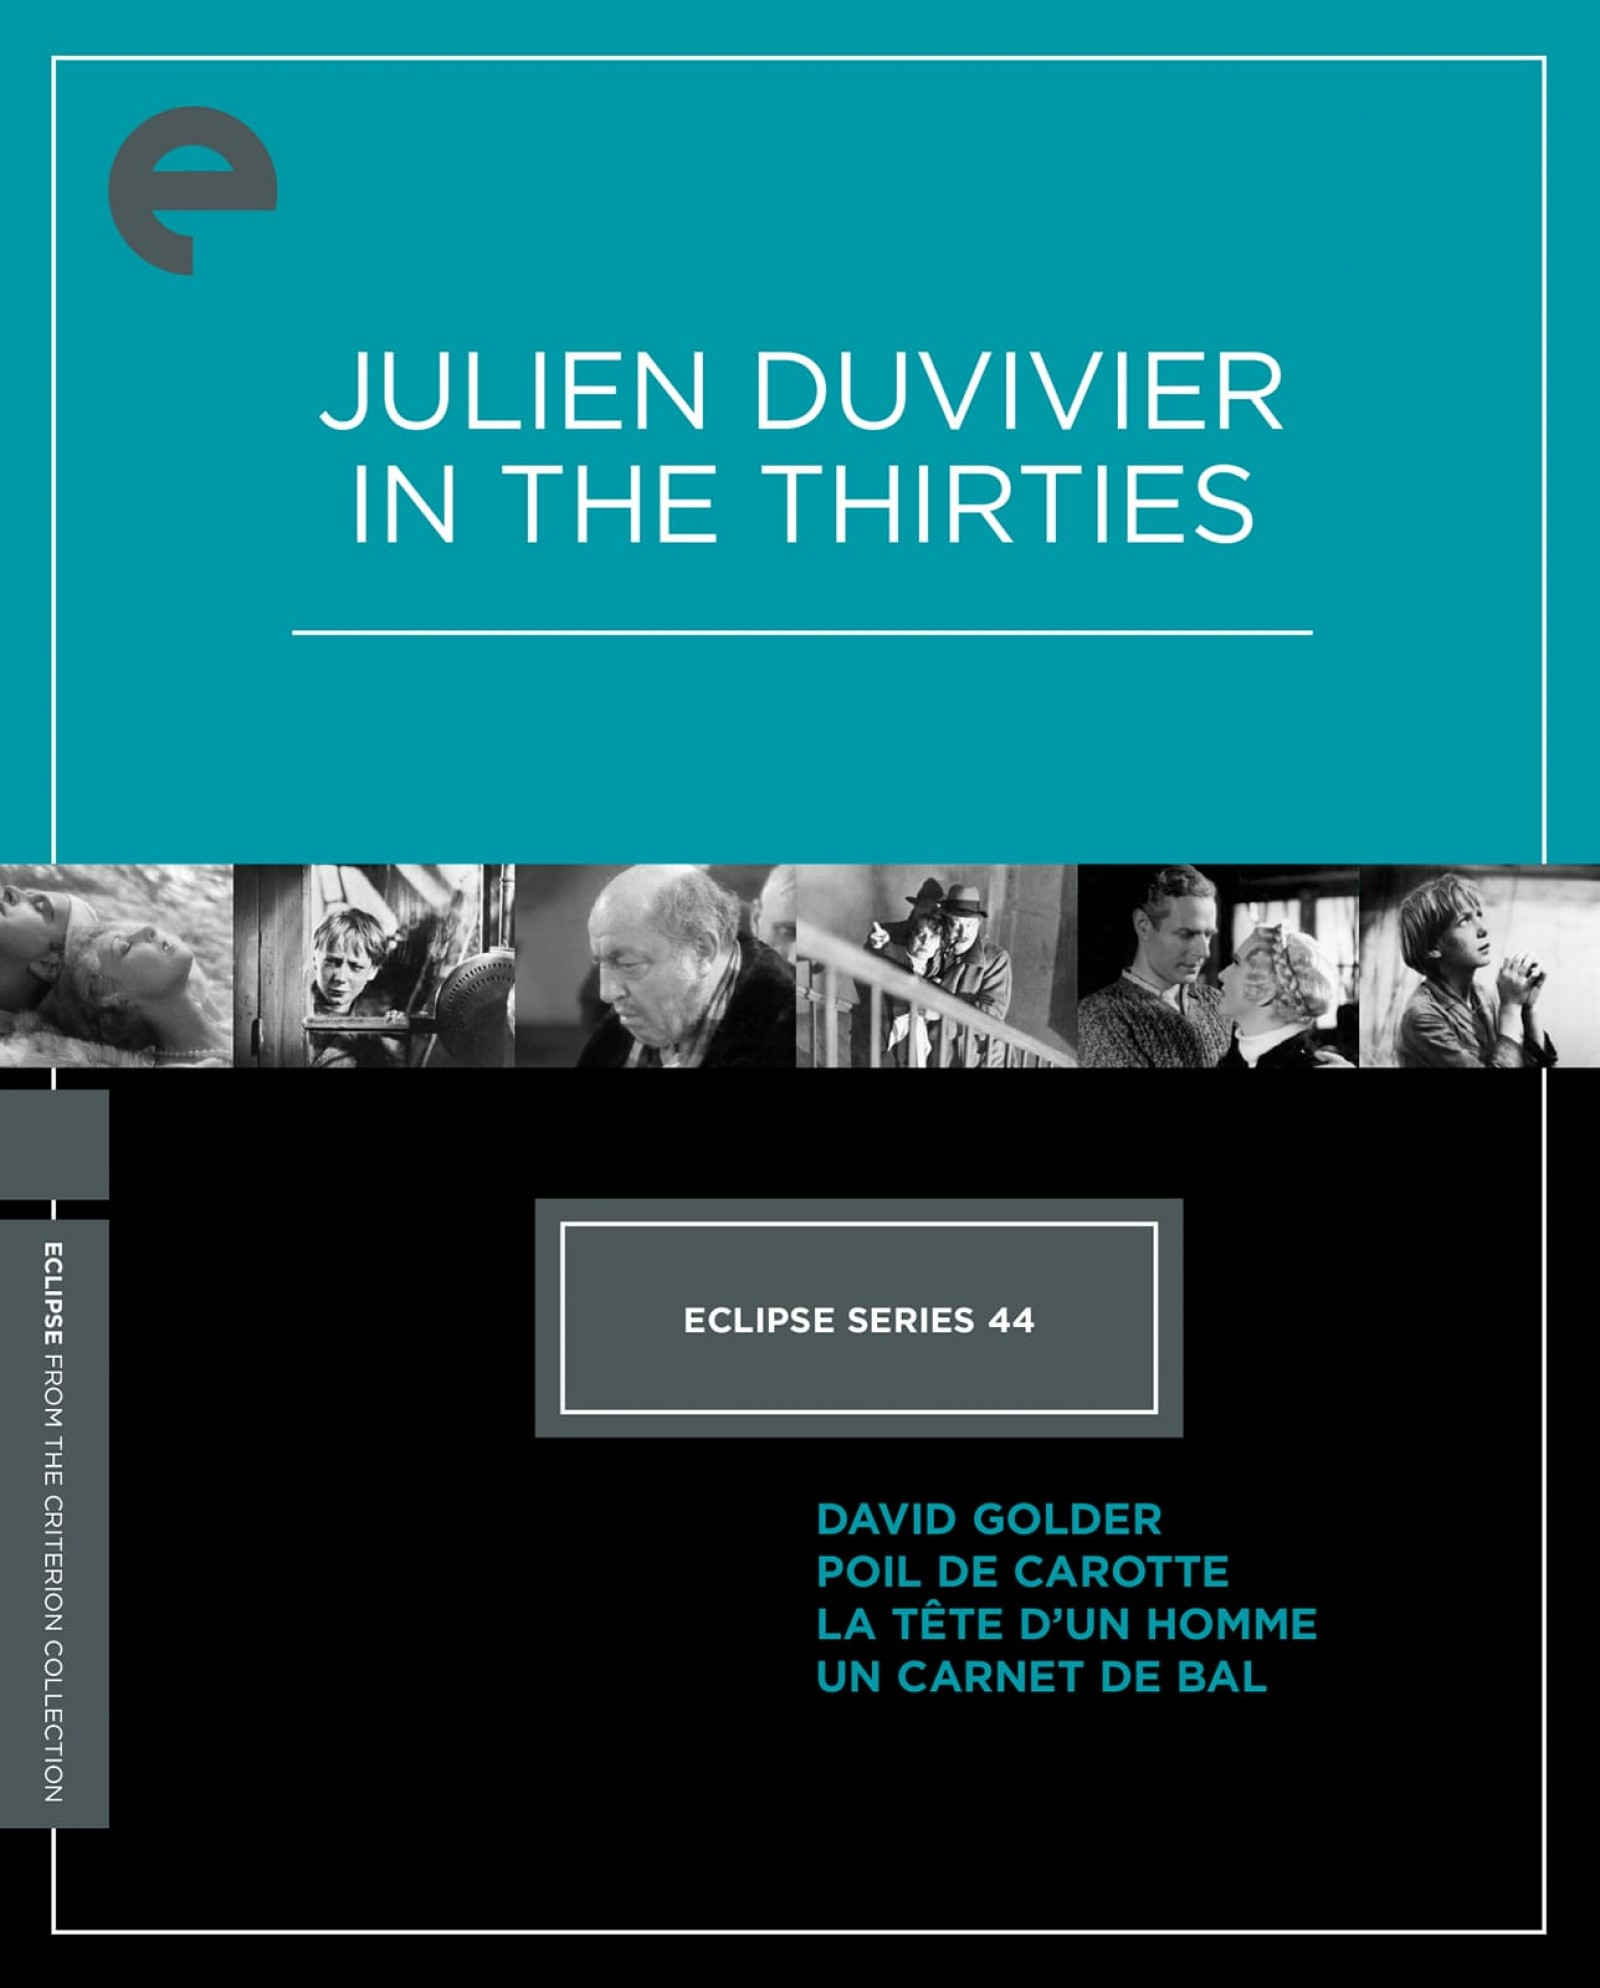 Eclipse Series 44: Julien Duvivier in the Thirties